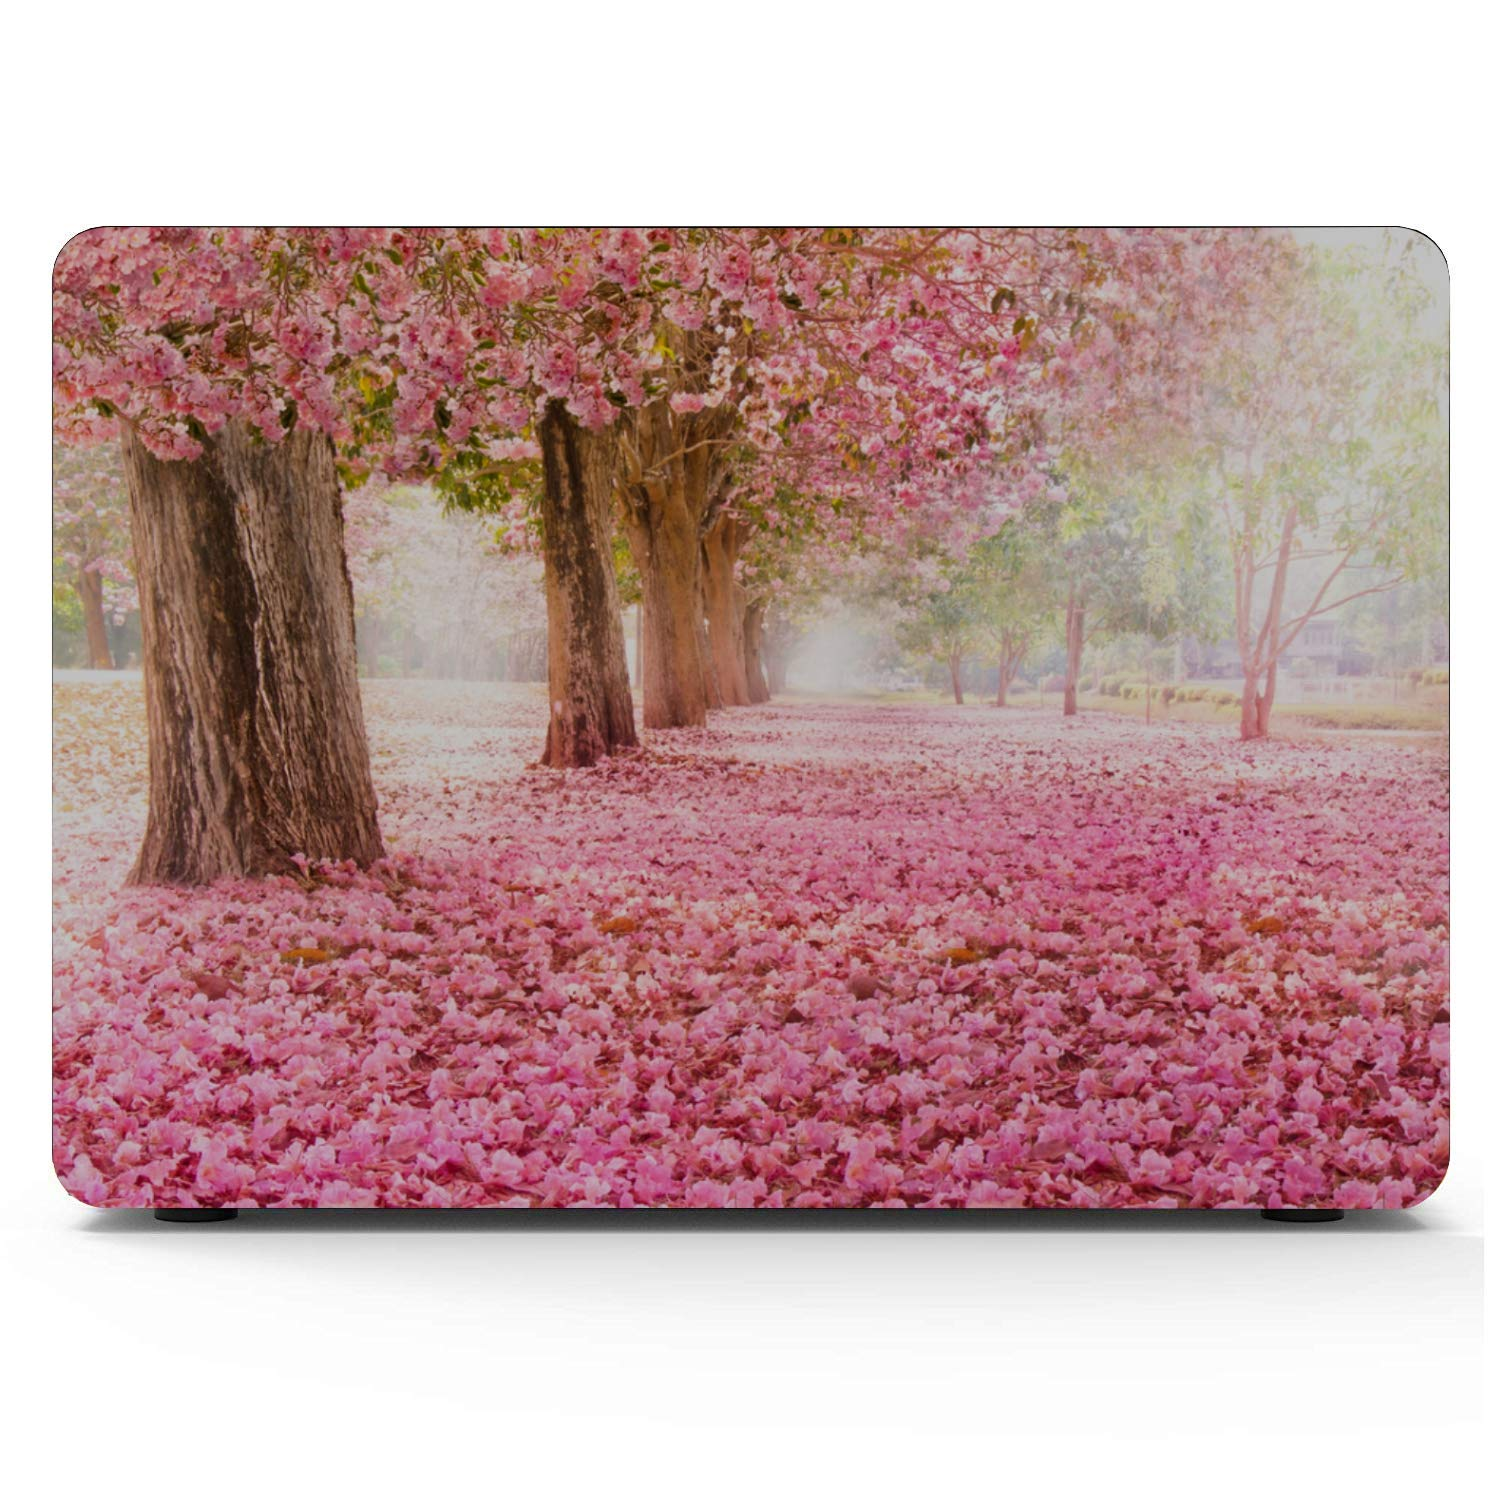 MacBook Pro 2018 Accessories Spring Beautiful Pink Flower Fragrant Plastic Hard Shell Compatible Mac Air 11 Pro 13 15 12inch MacBook Case Protection for MacBook 2016-2019 Version